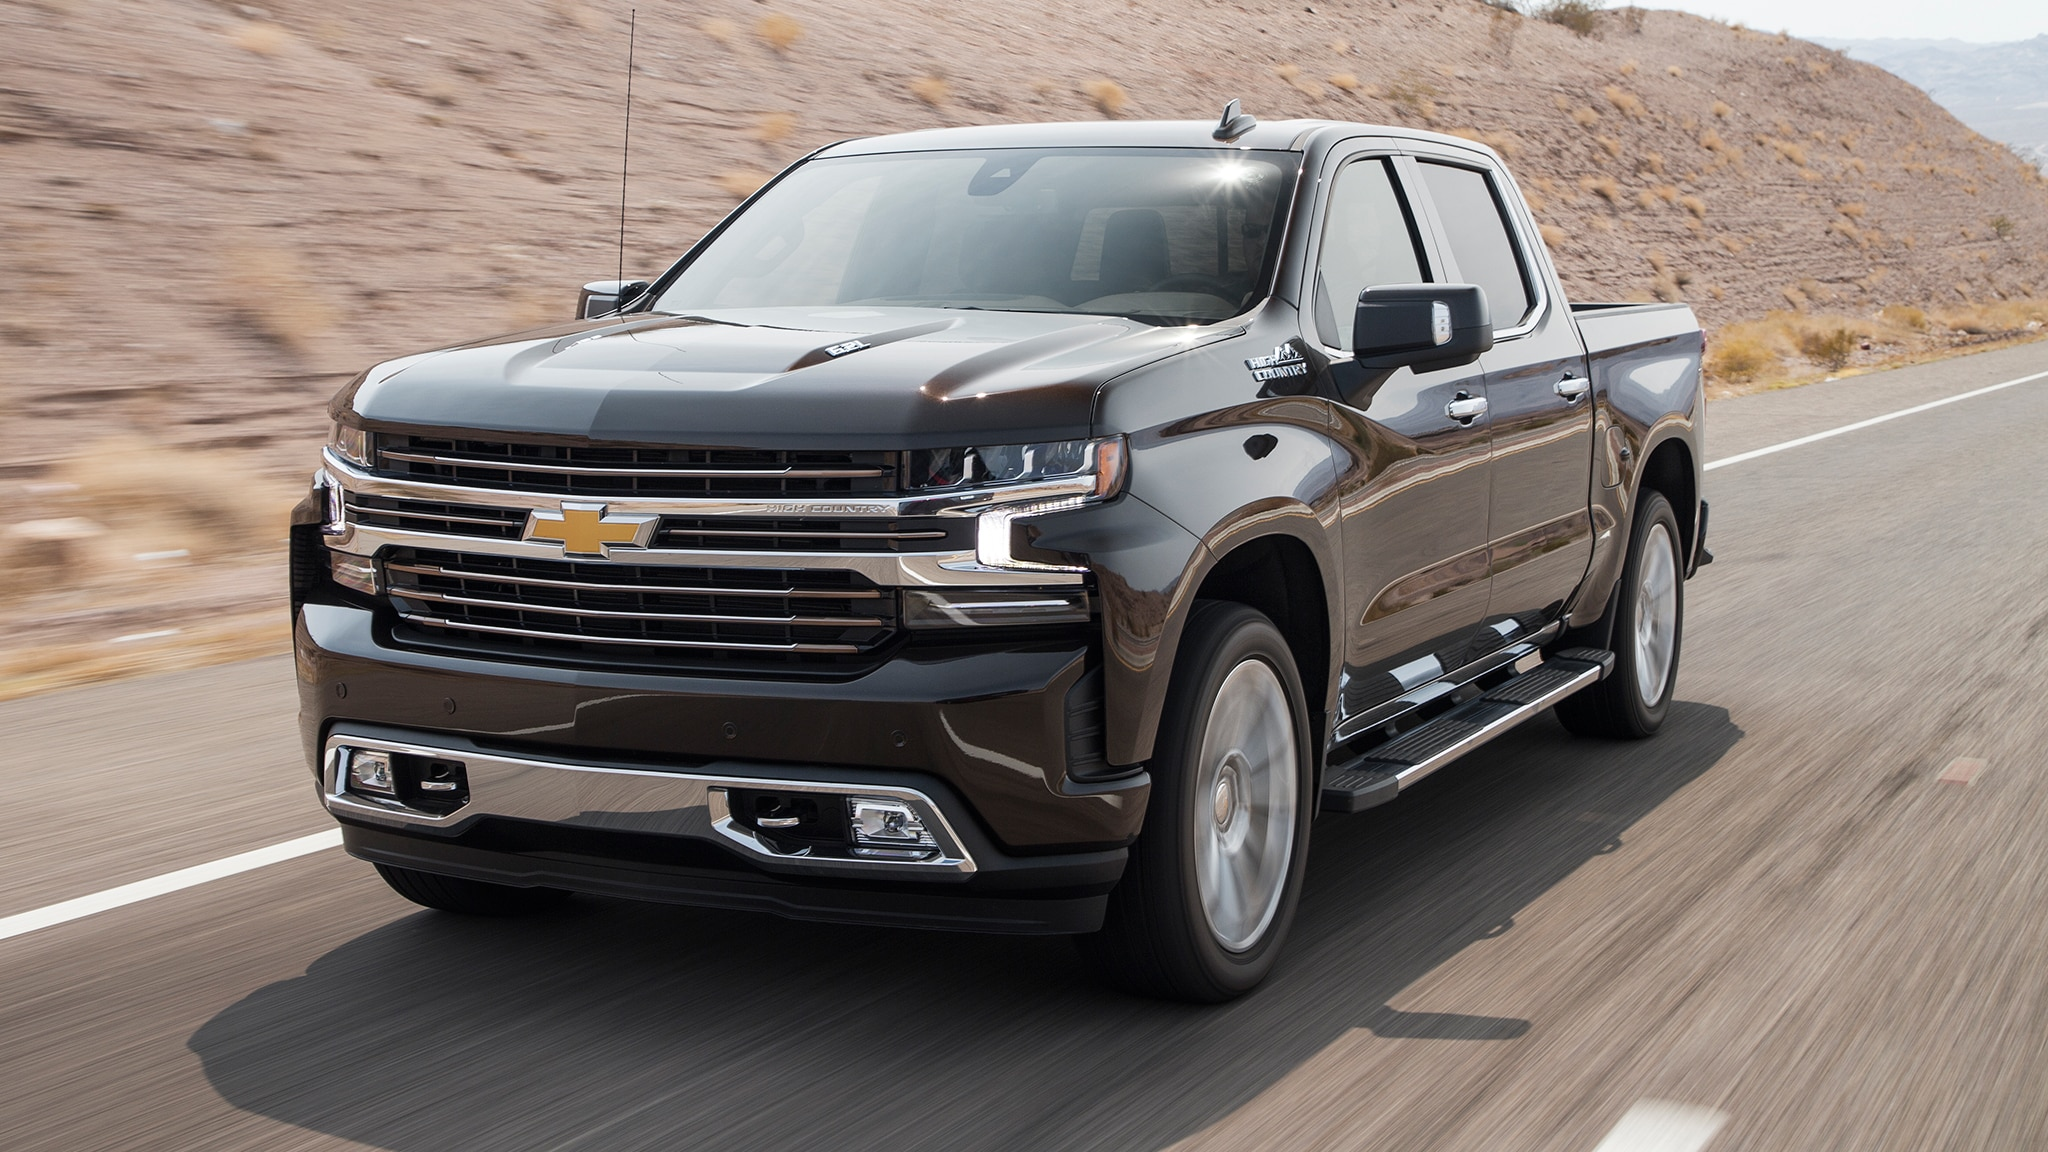 Chevrolet Silverado High Country 2019 vs. GMC Sierra ...